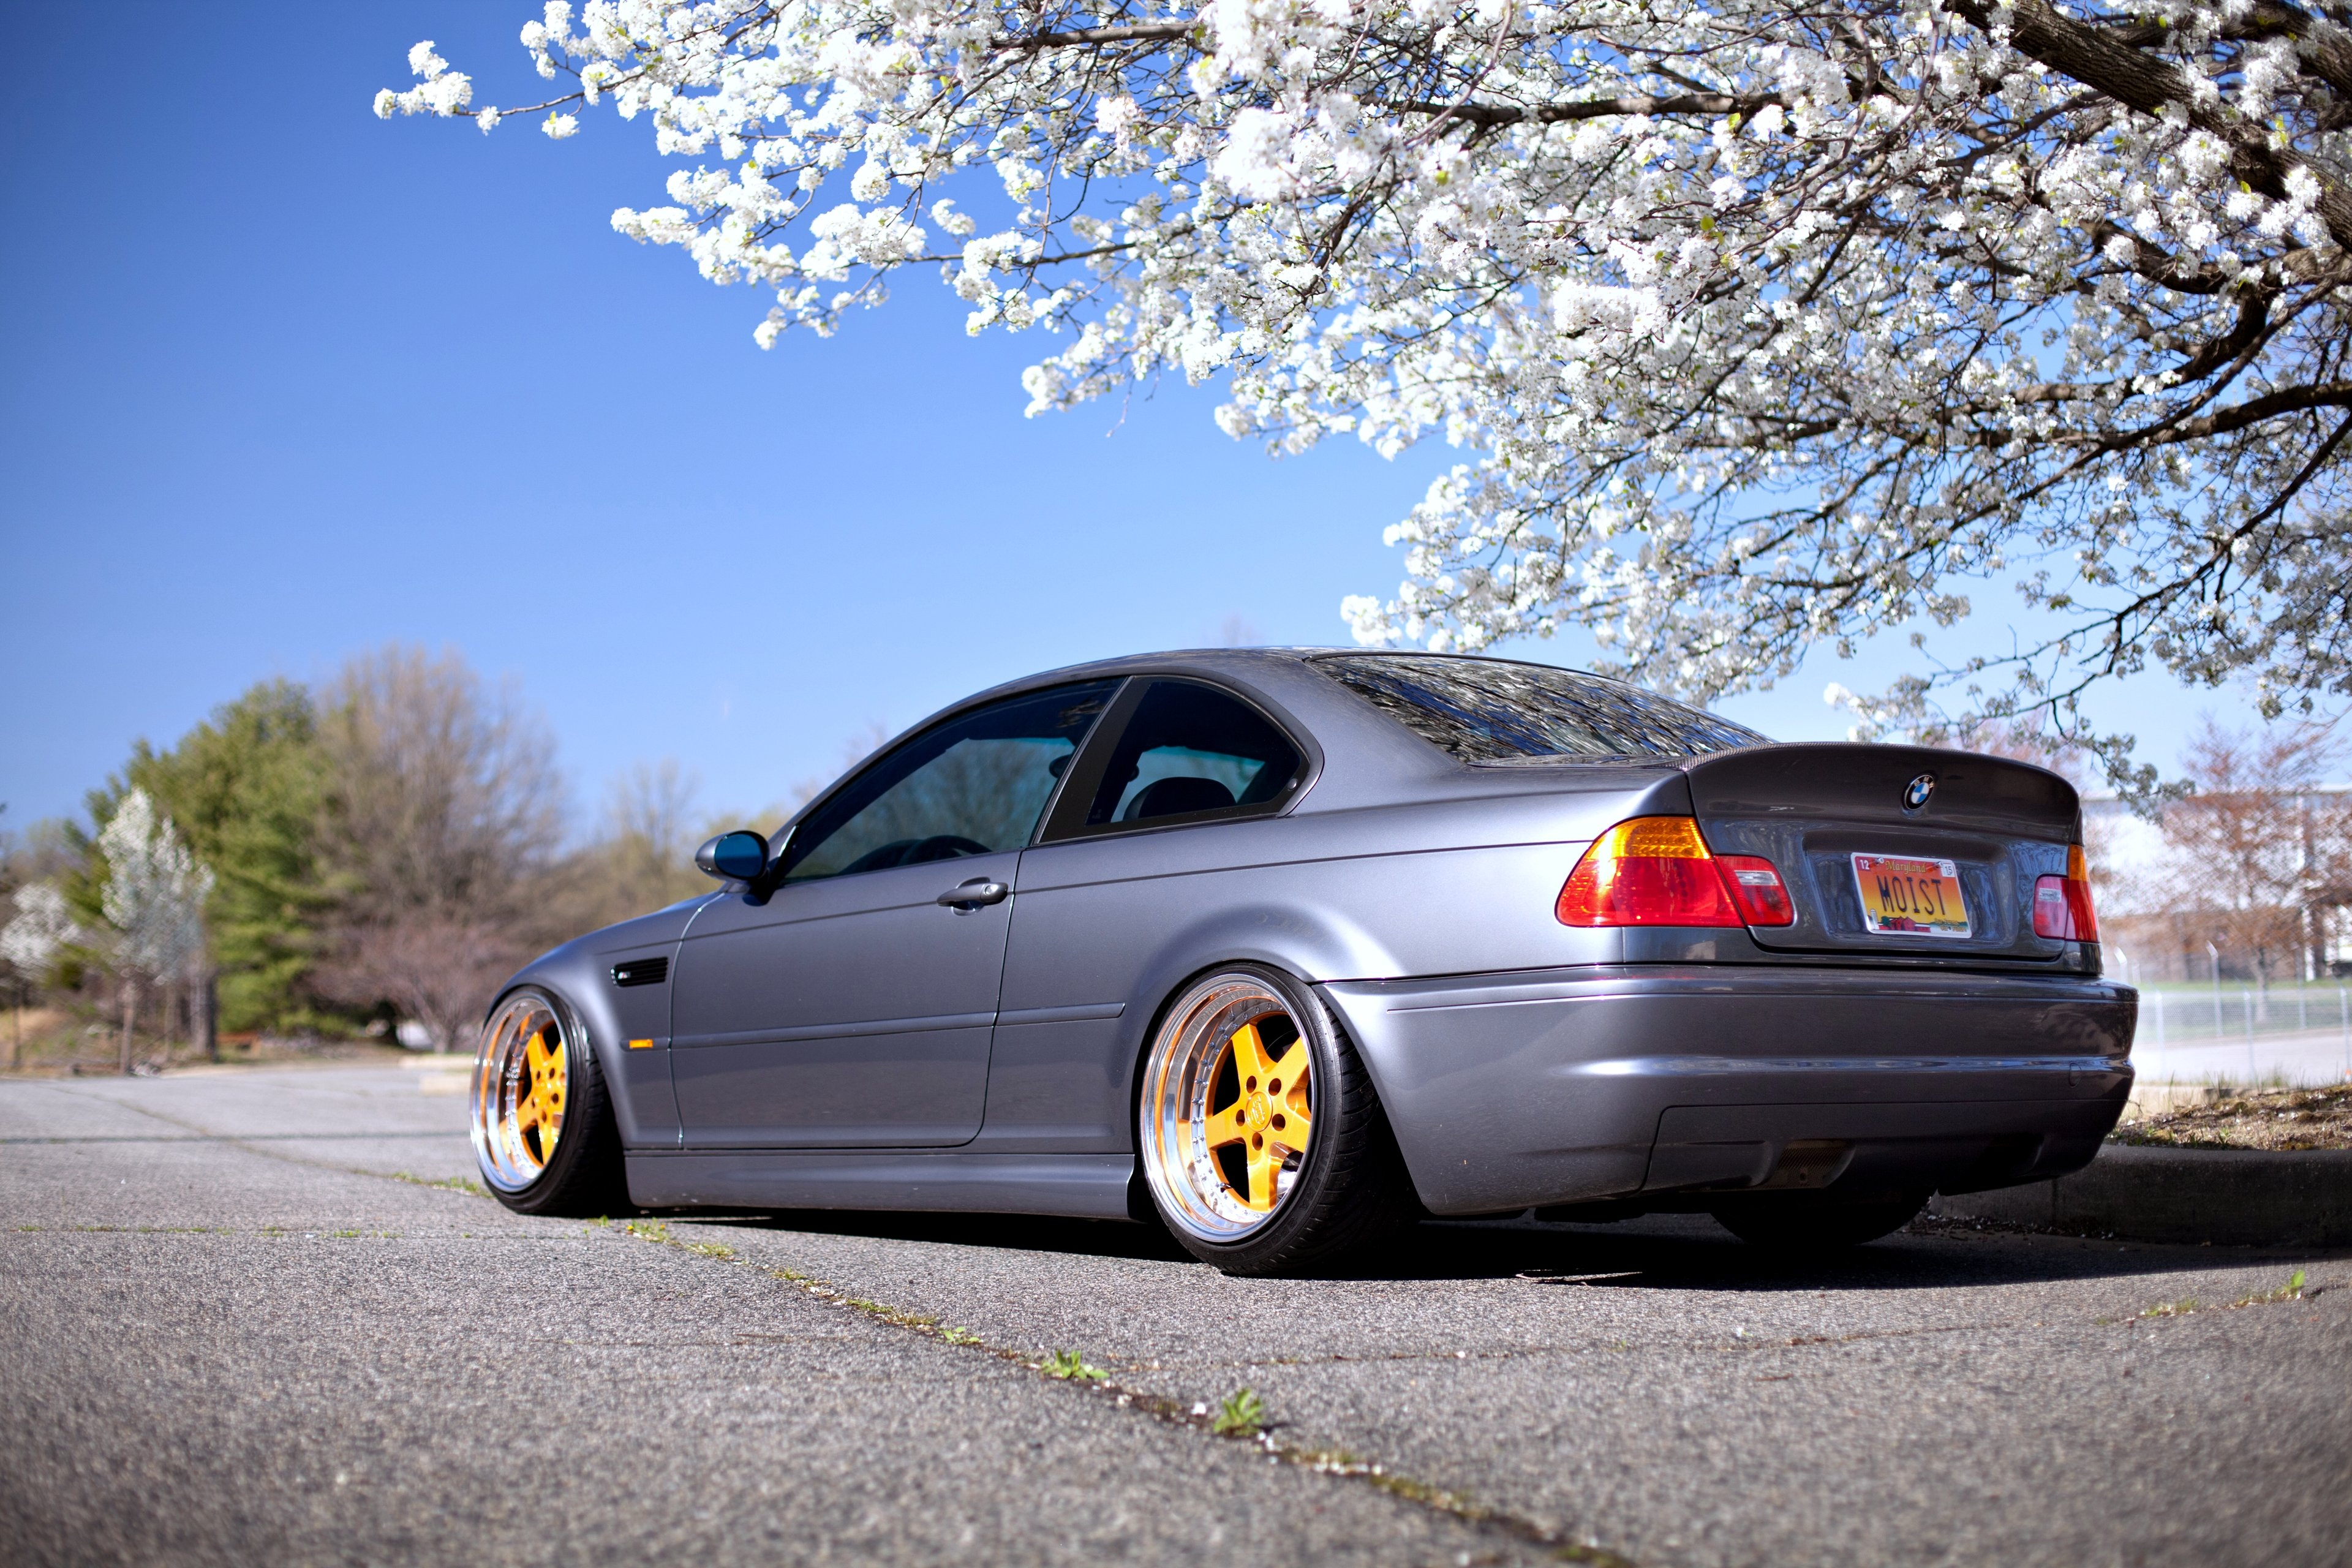 Hd Nfs Cars Wallpapers Bmw E46 M3 Series Gray Road Spring Speed Motors Cars